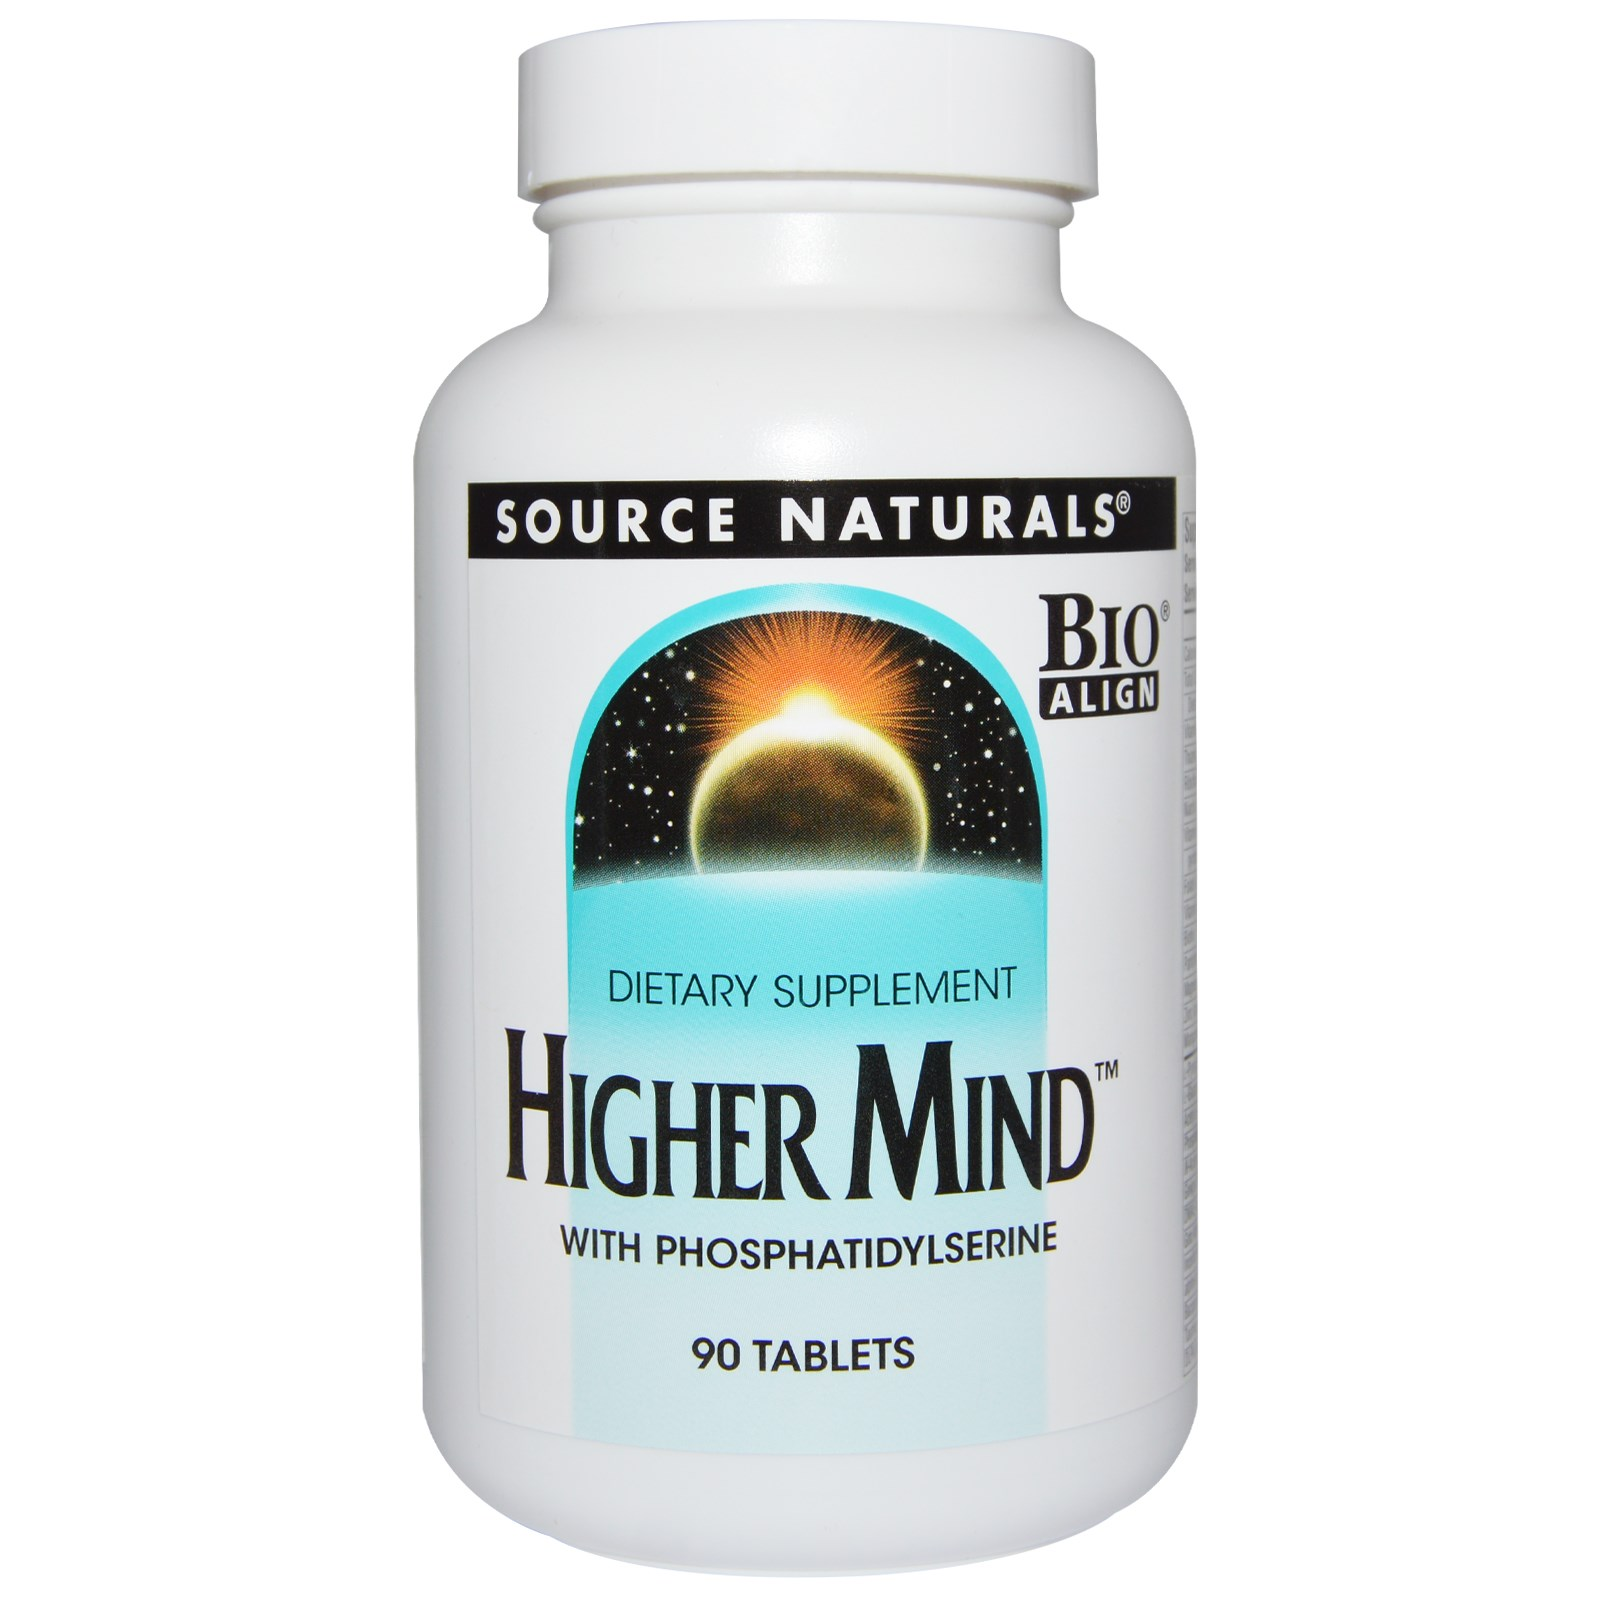 Source naturals higher mind